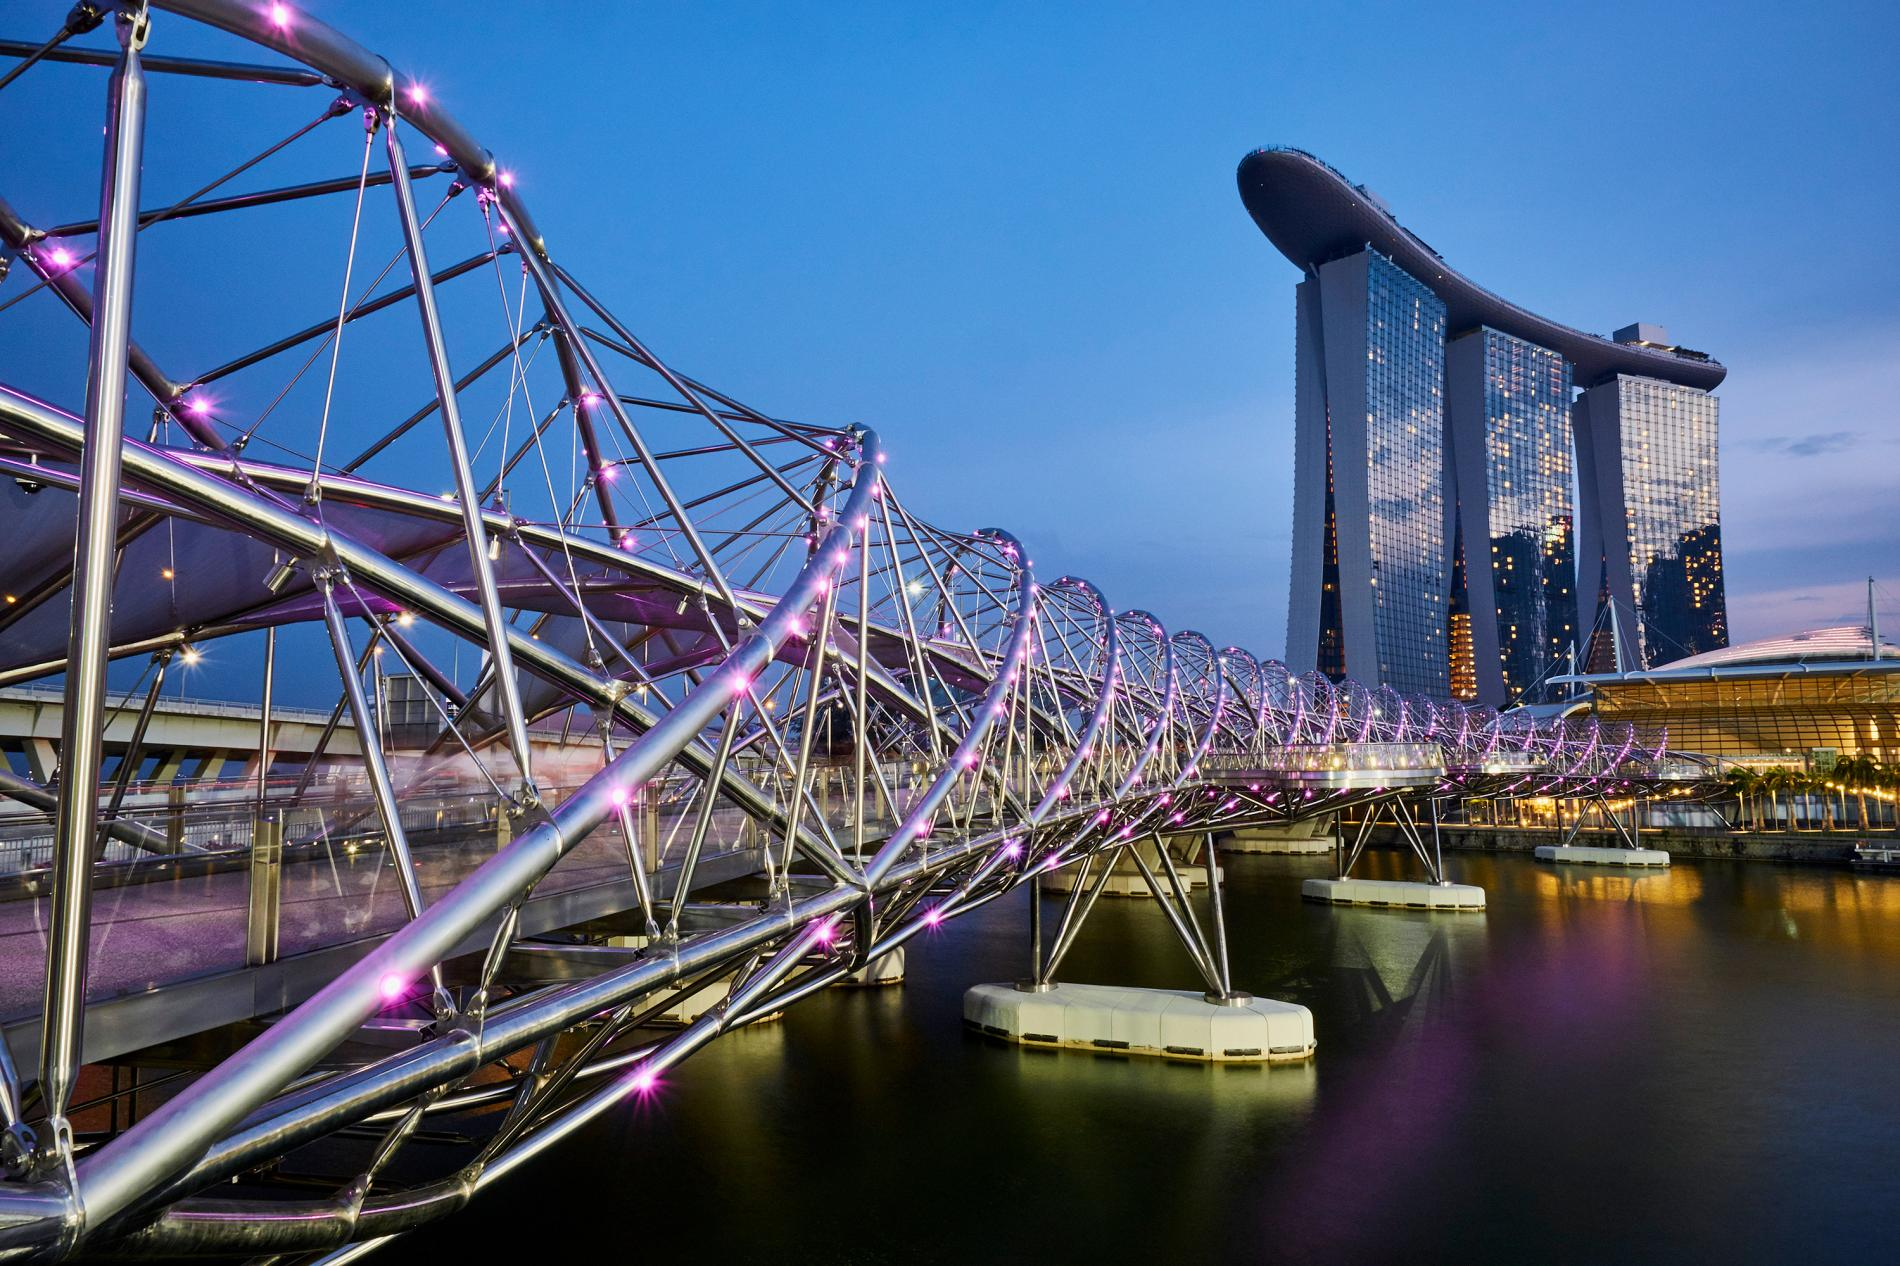 helix-bridge-singapore.adapt.1900.1.jpg